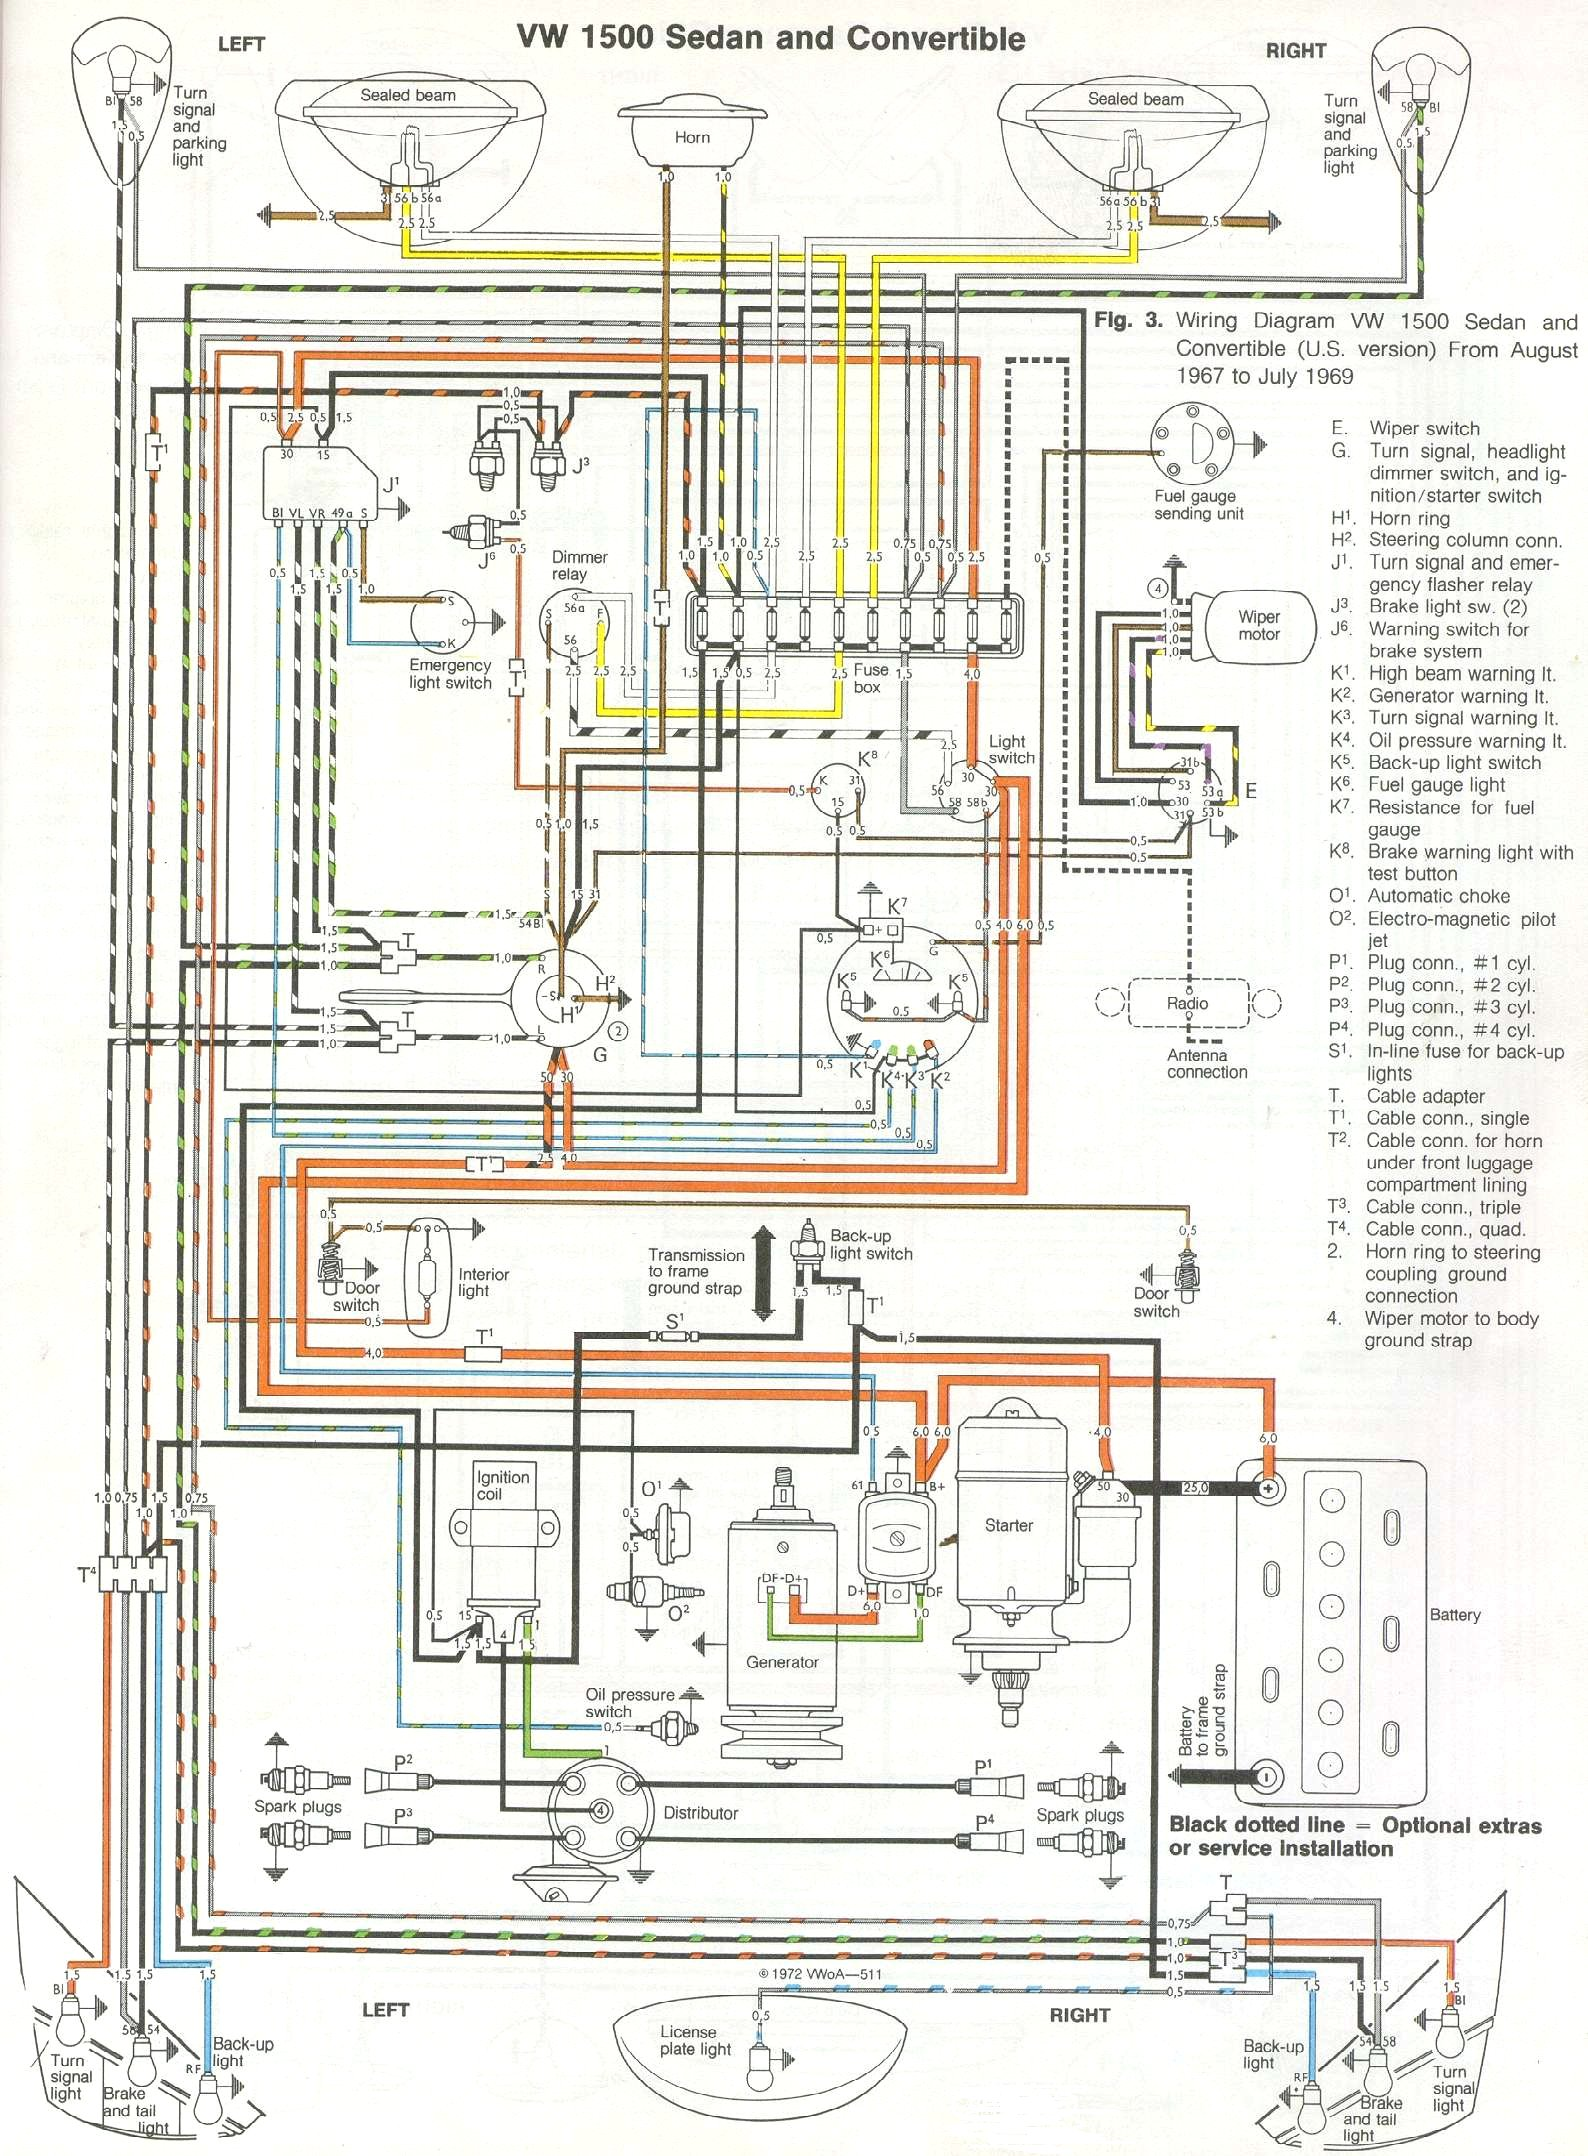 bug_6869 vw wiring harness diagram cj7 wiring harness diagram \u2022 wiring Wiring Harness Diagram at fashall.co